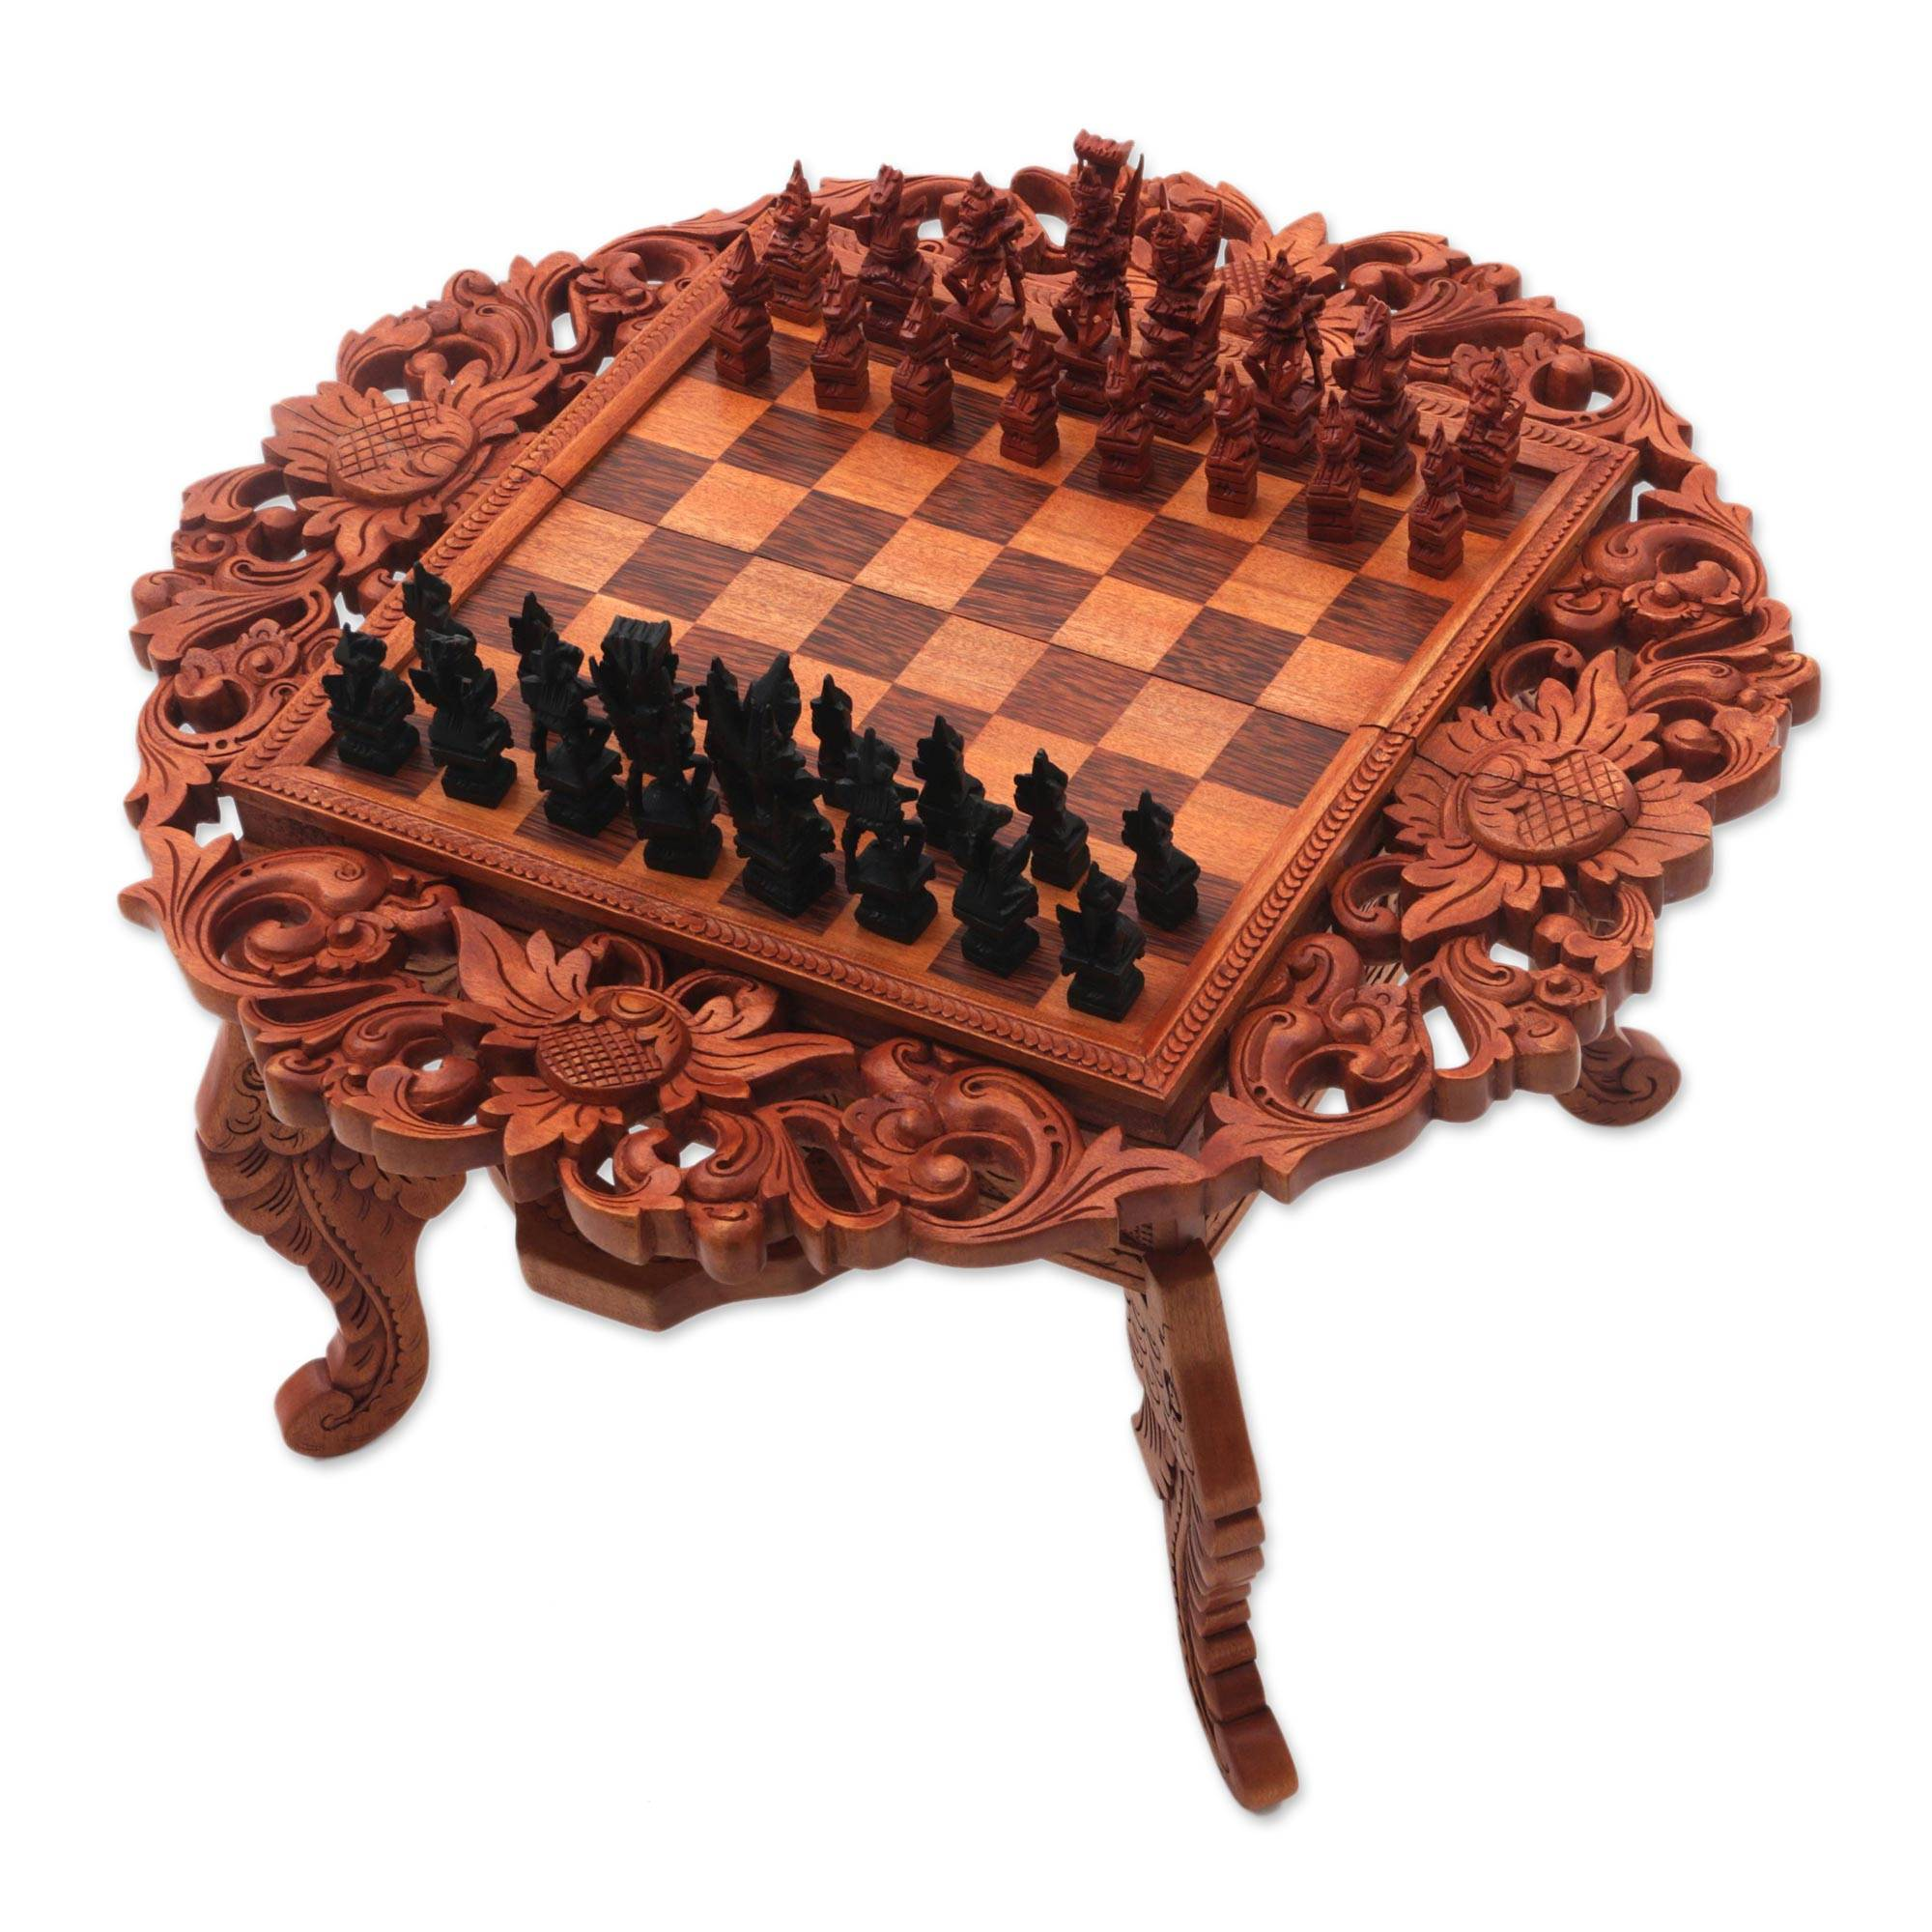 Hand Carved Wood Chess Set Ramayana Garland